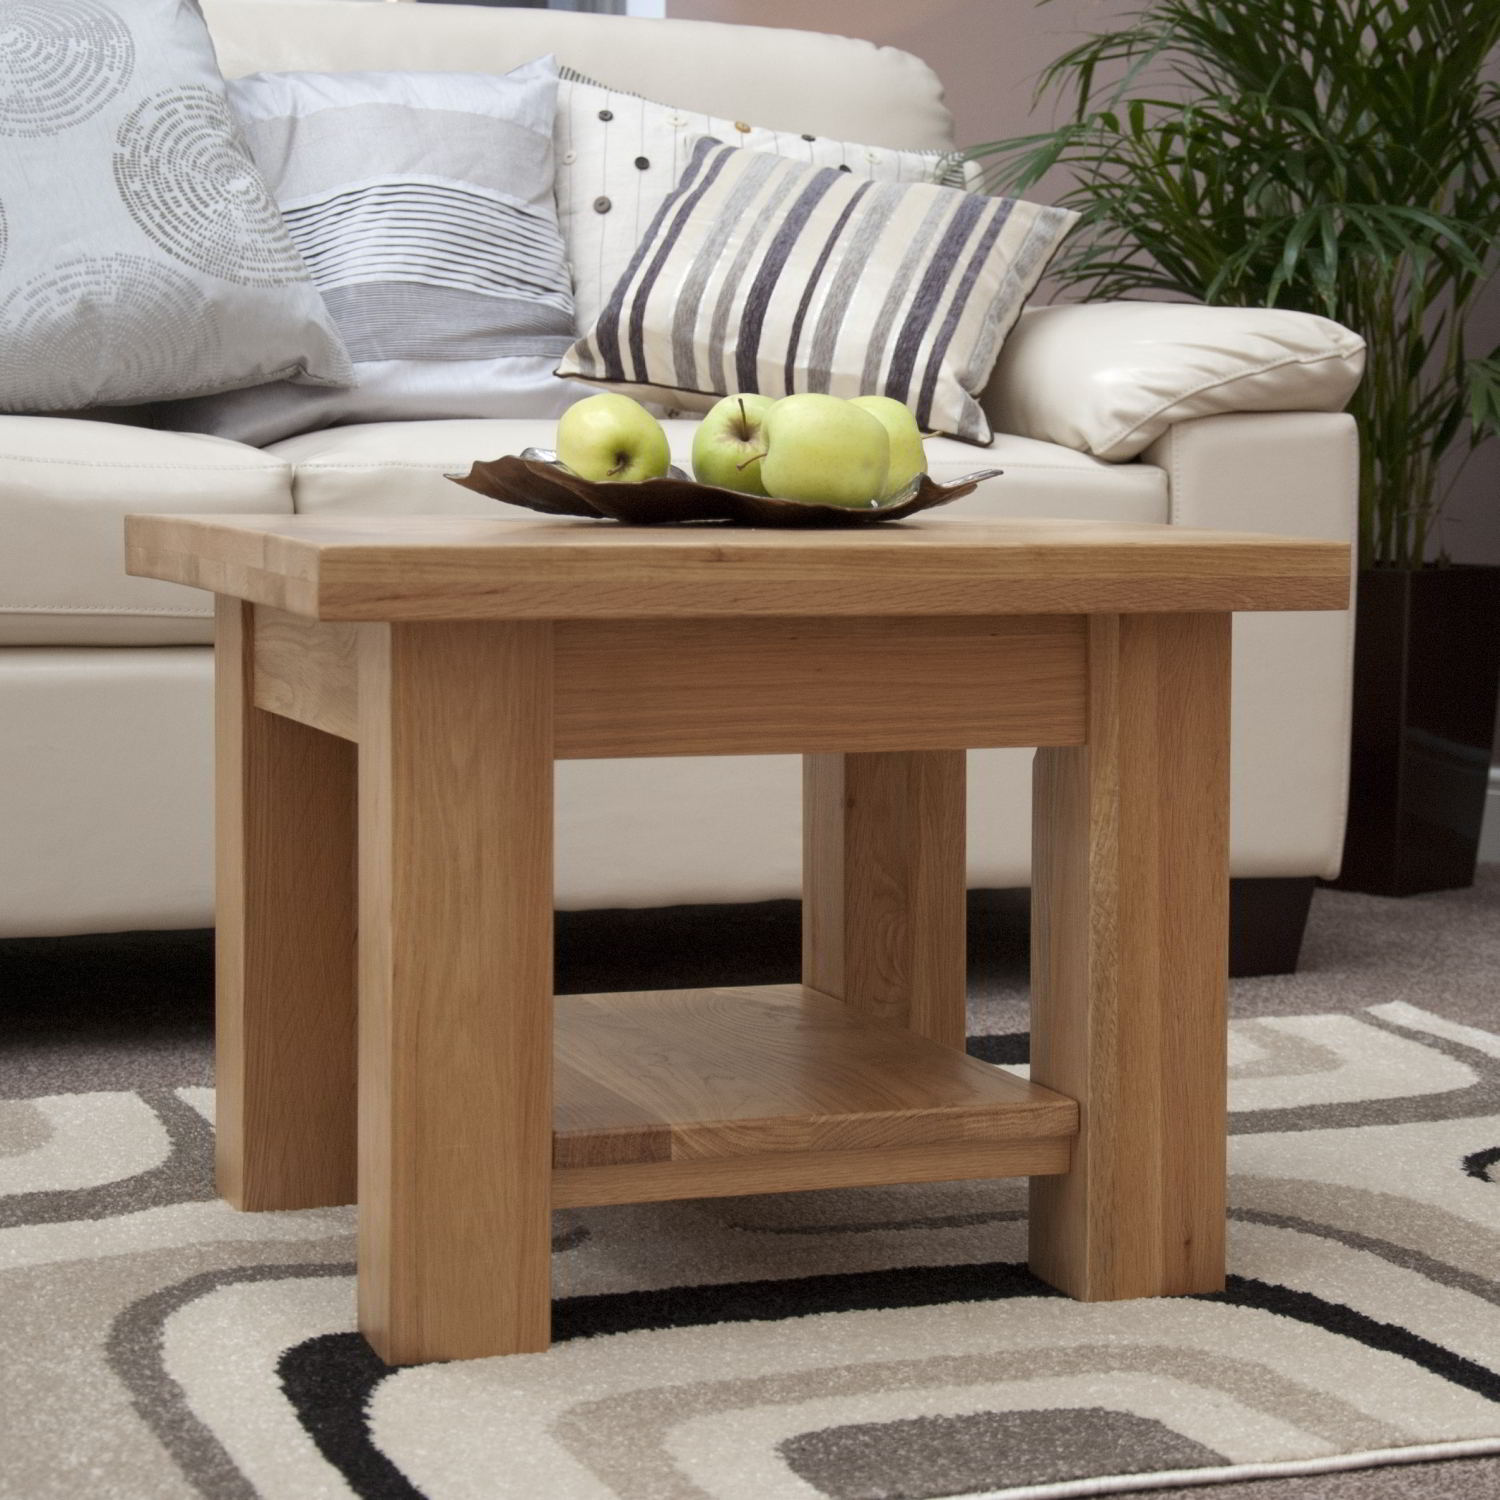 Kingston Solid Oak Living Room Lounge Furniture Small